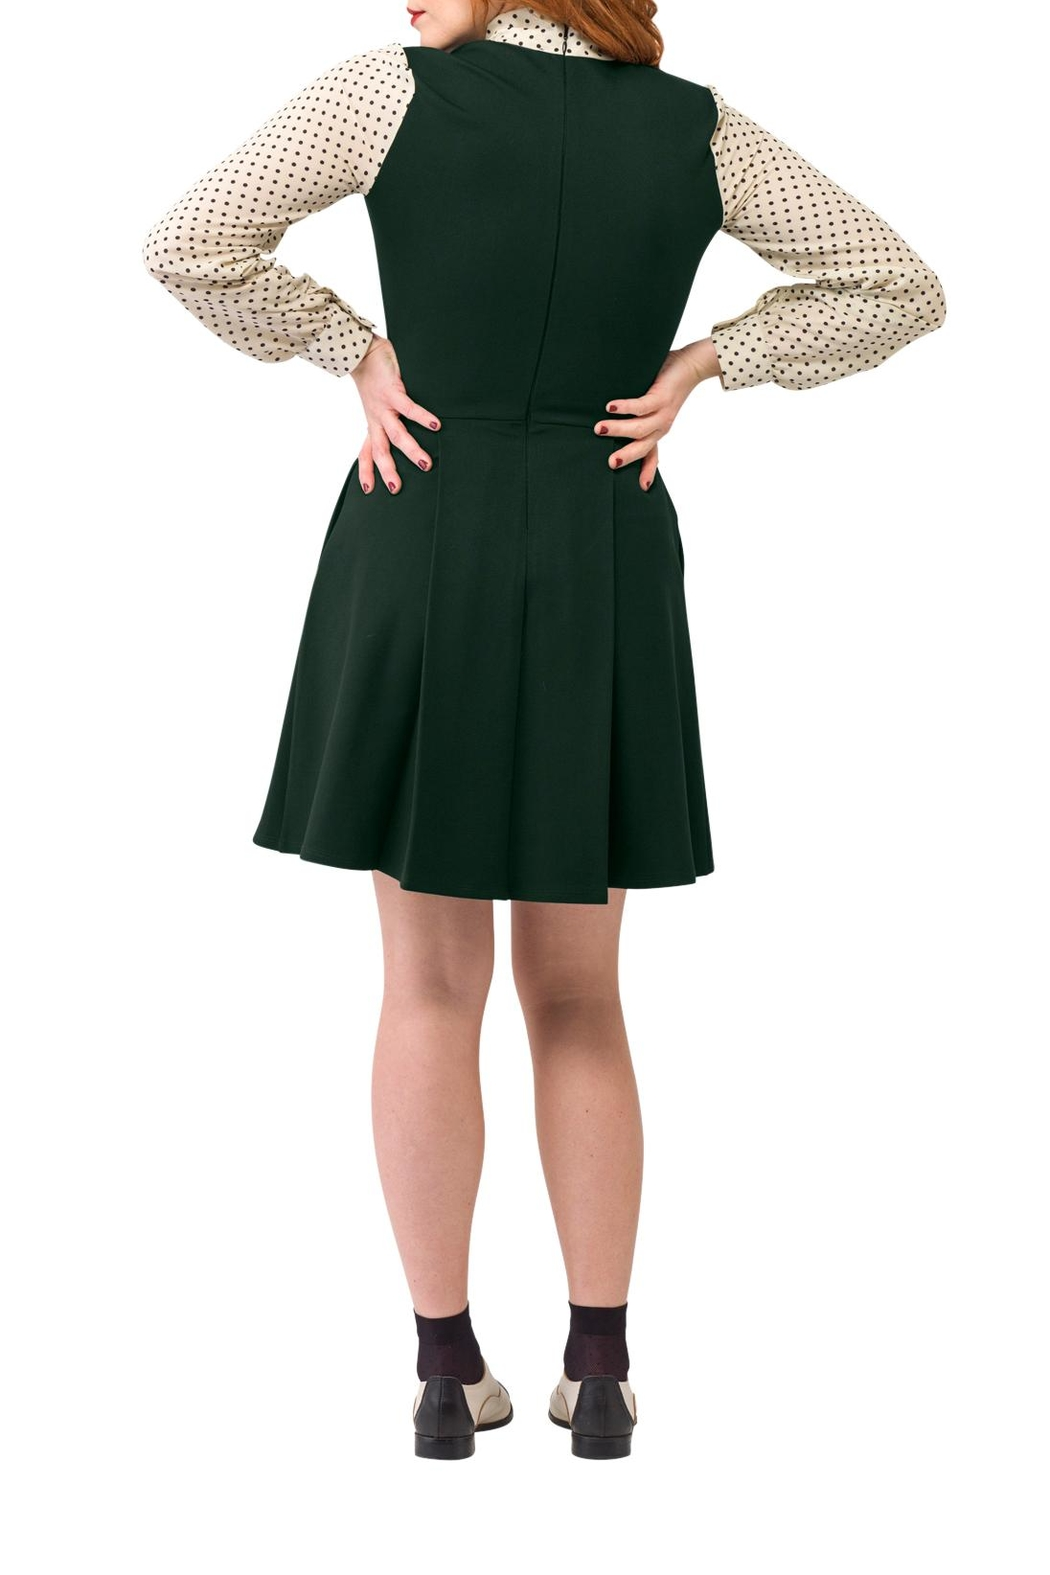 Smak Parlour Green Scholar Dress - Side Cropped Image